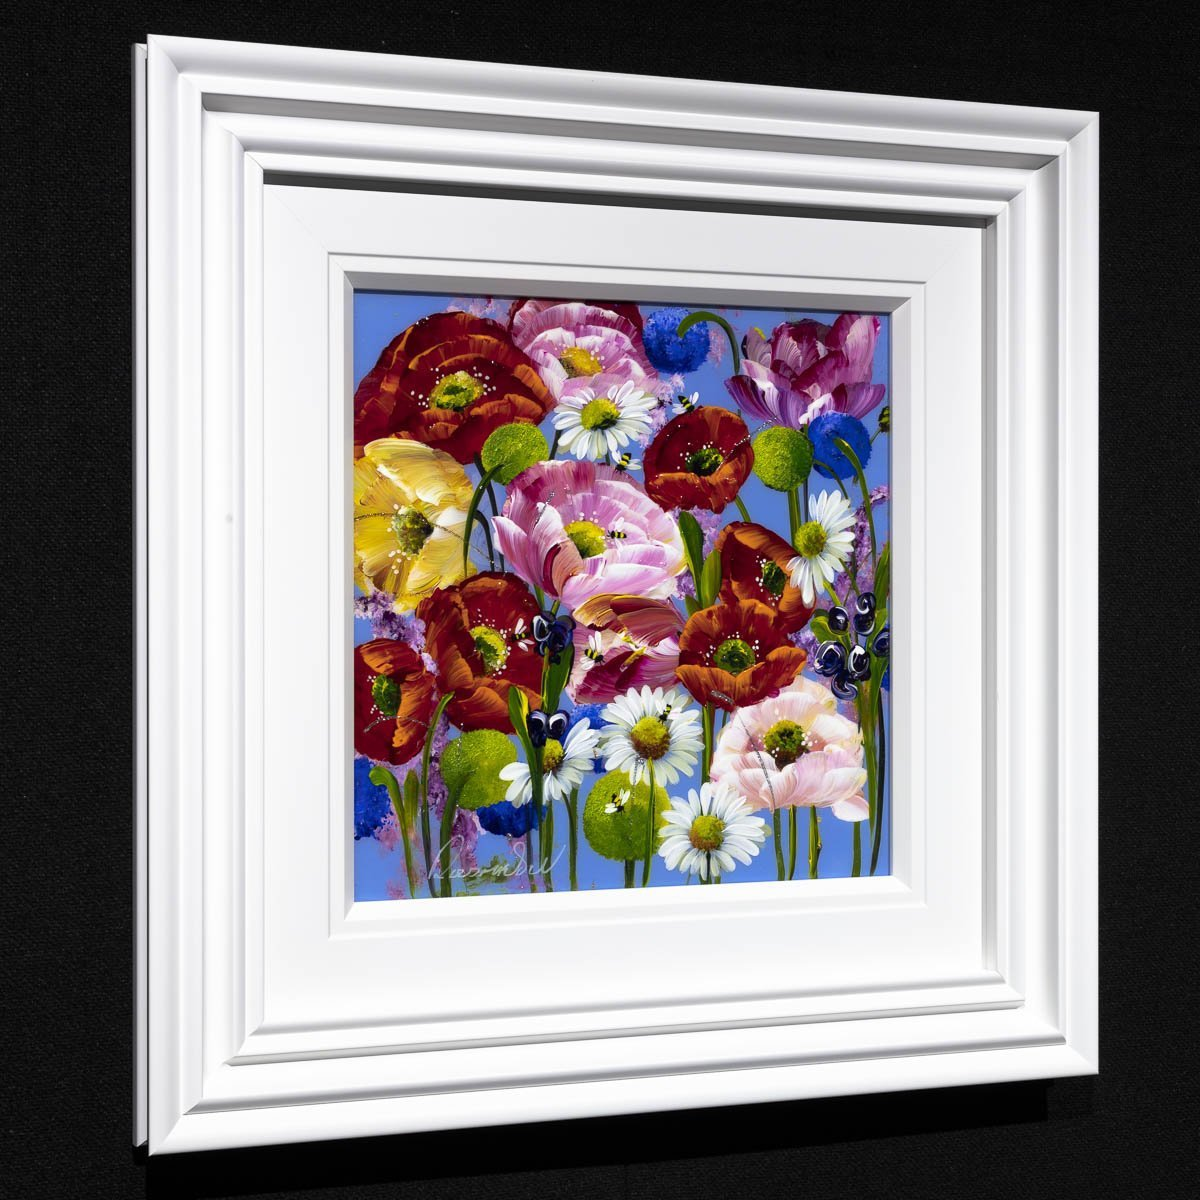 Picture Perfect - Original Rozanne Bell Framed